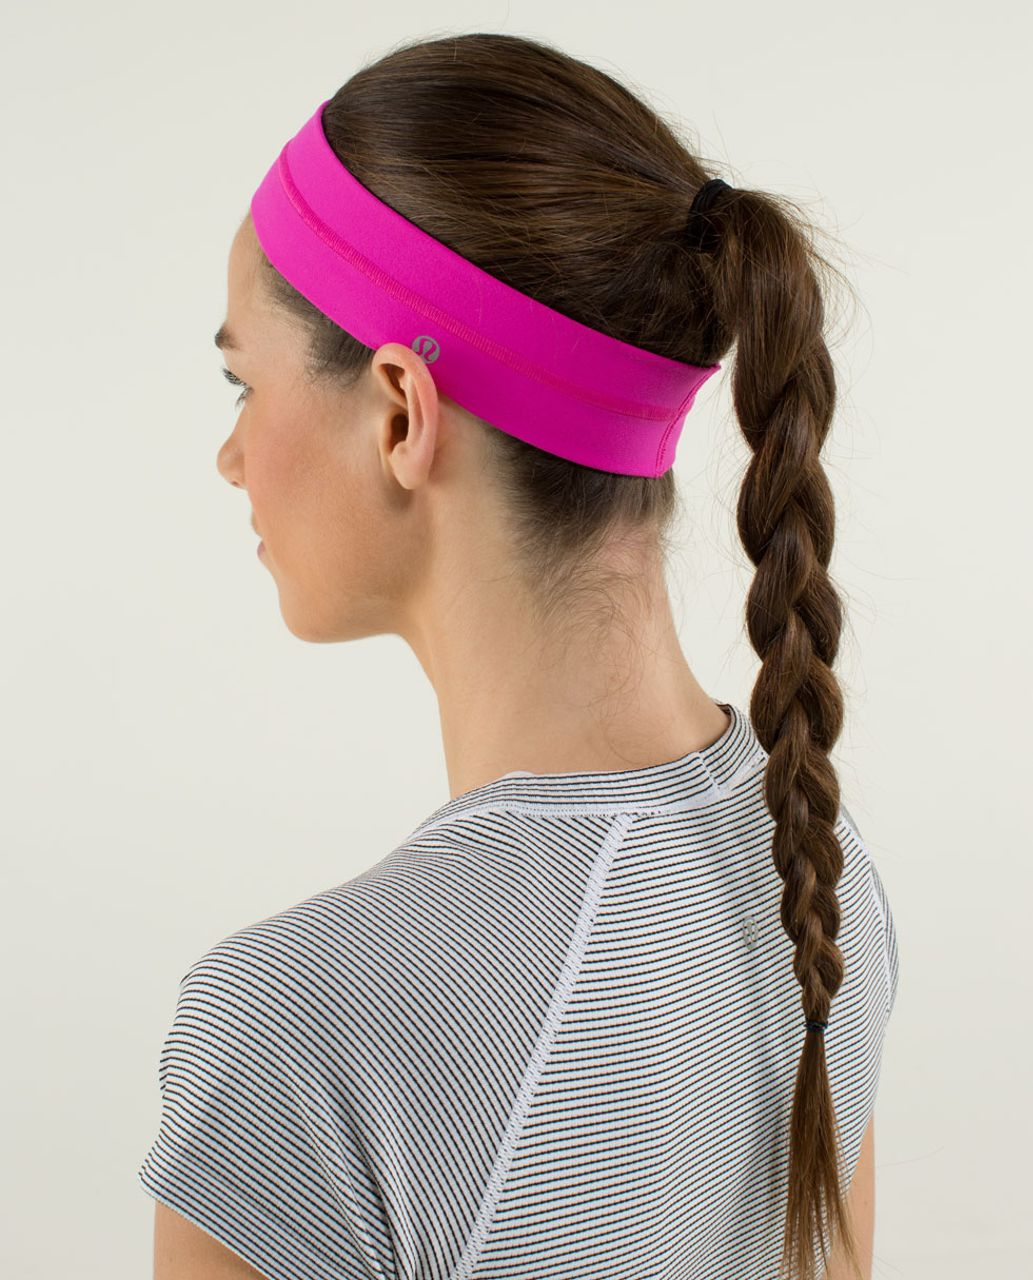 Lululemon Fly Away Tamer Headband - Paris Perfection